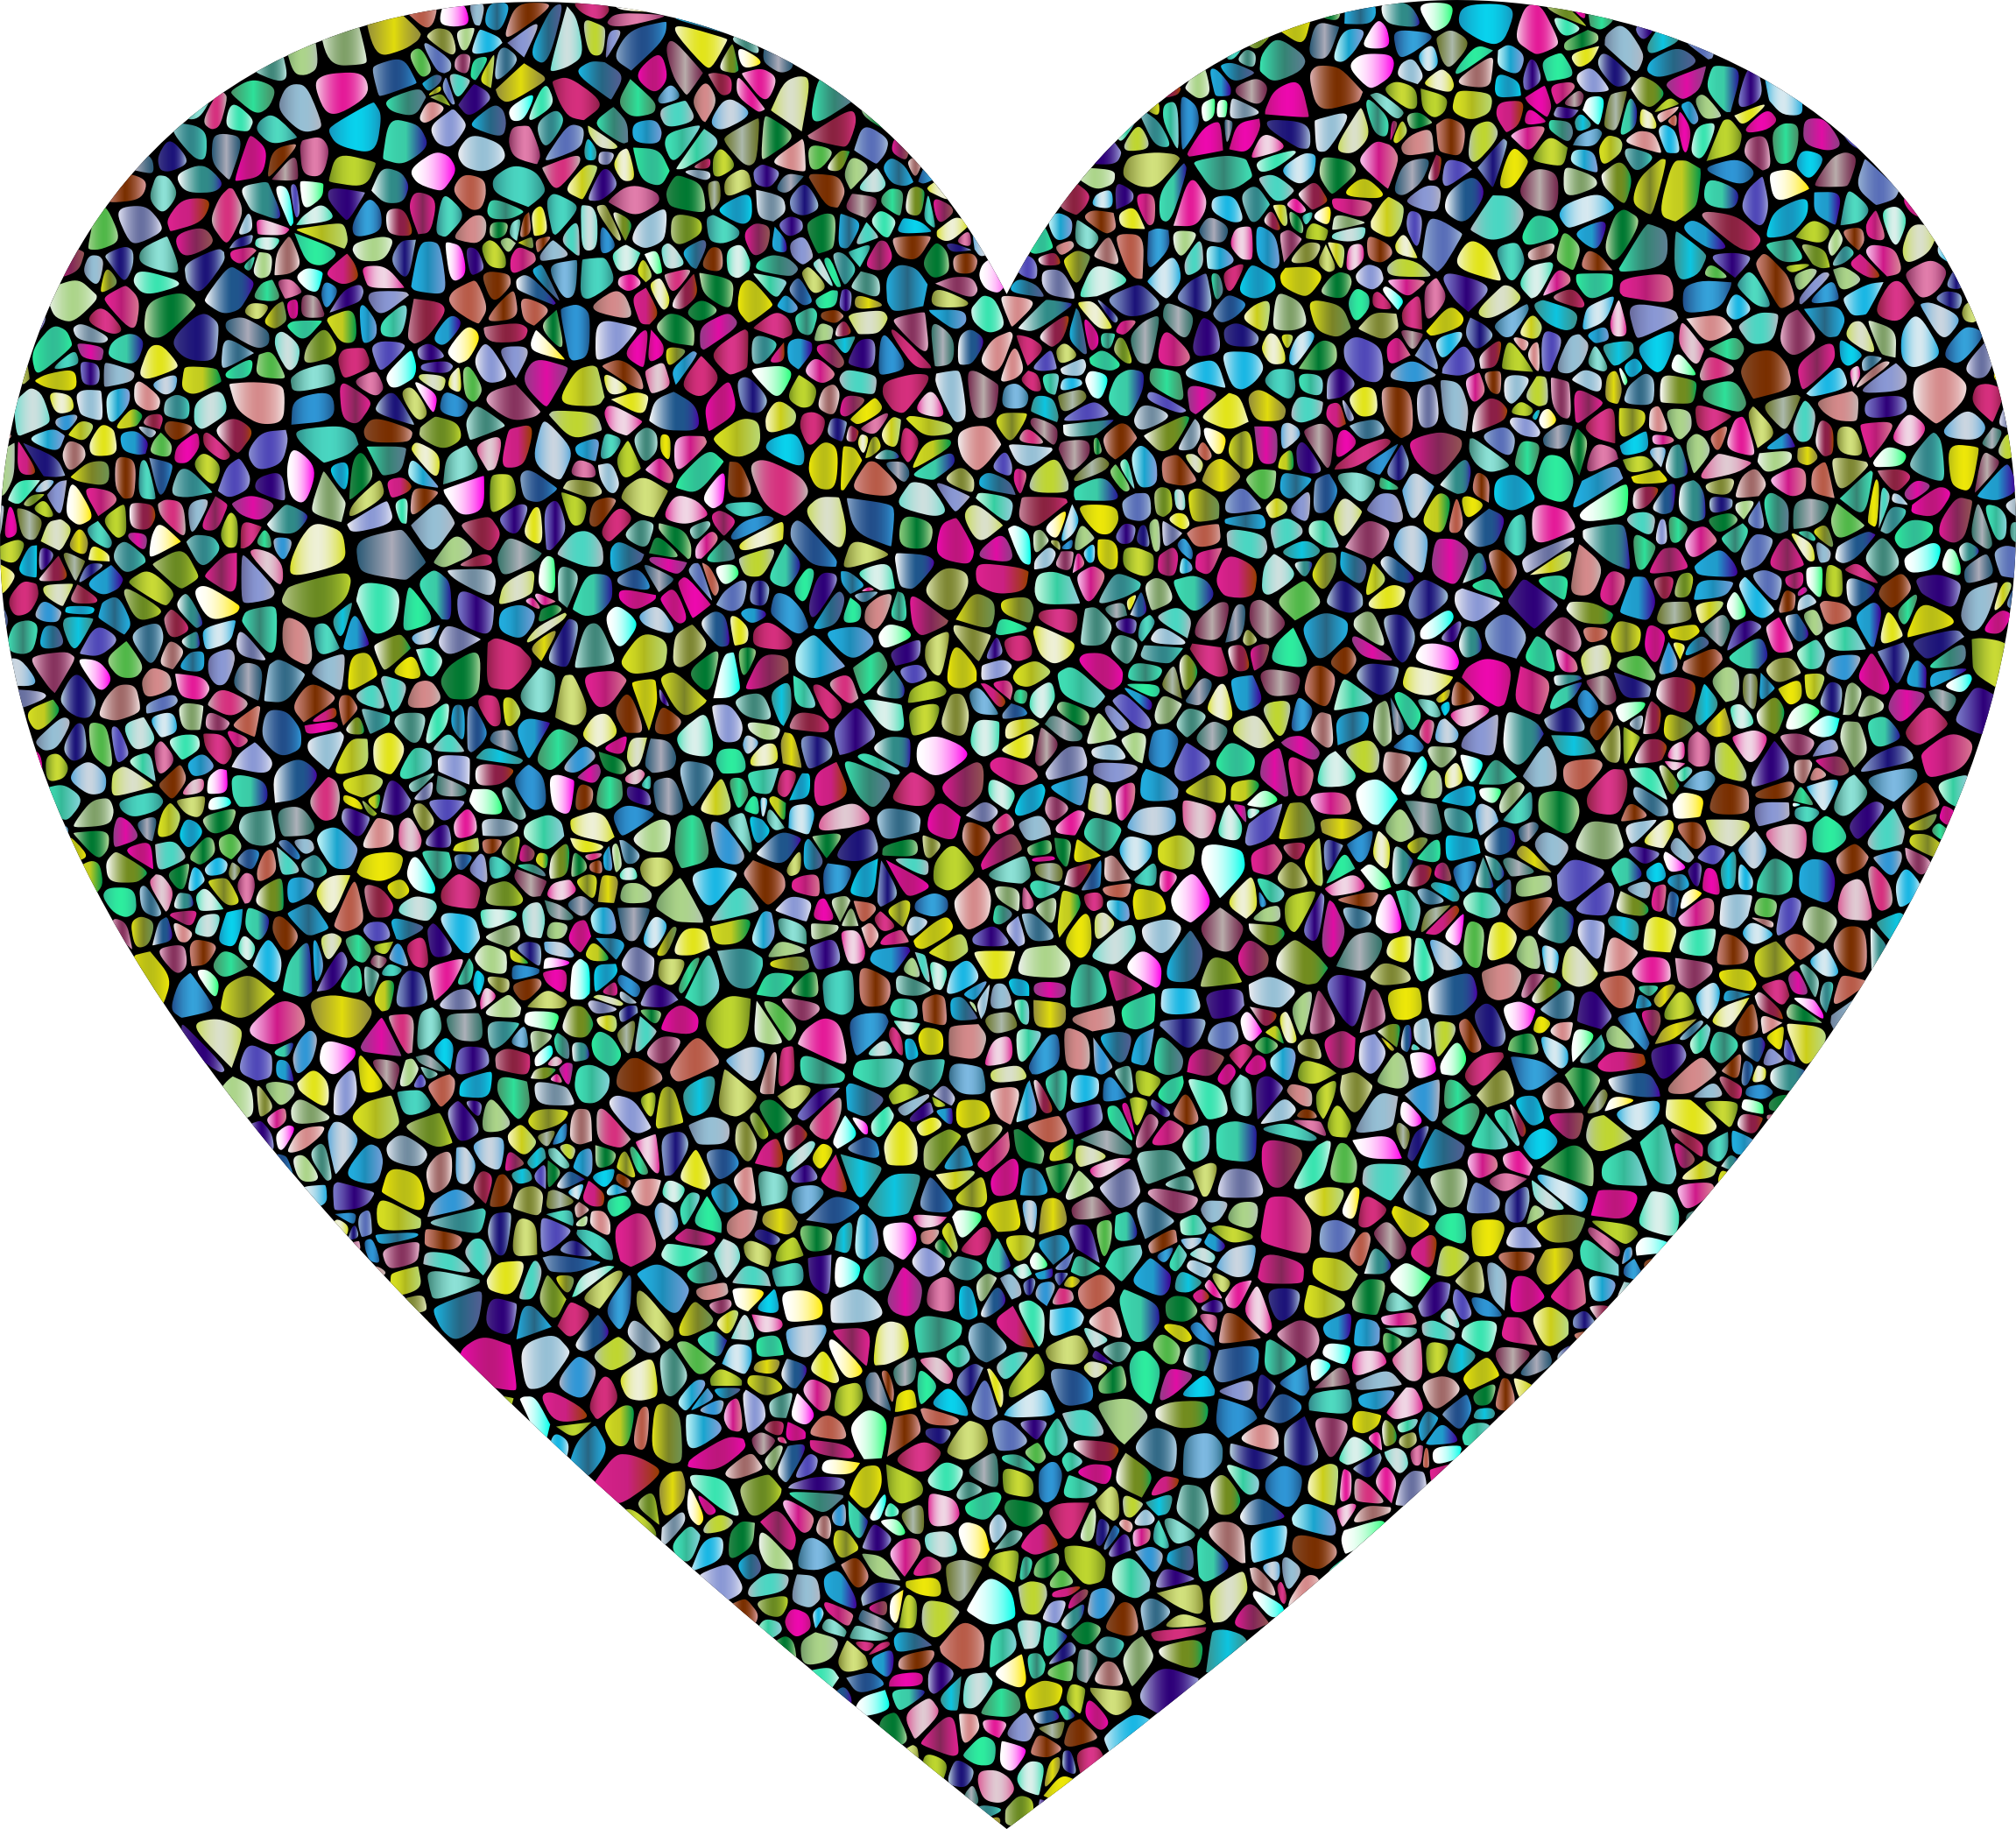 Polyprismatic Tiled Heart With Background by GDJ